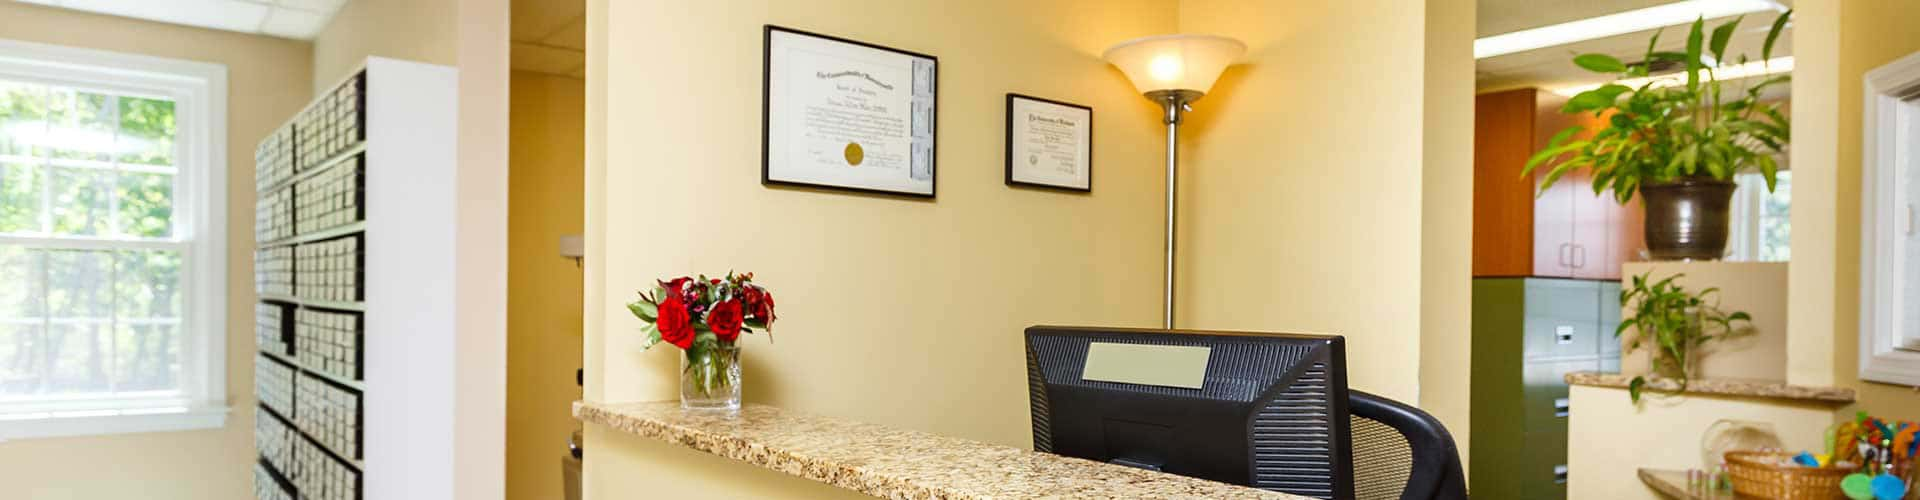 Office Front Desk at Weston Orthodontics in Weston MA